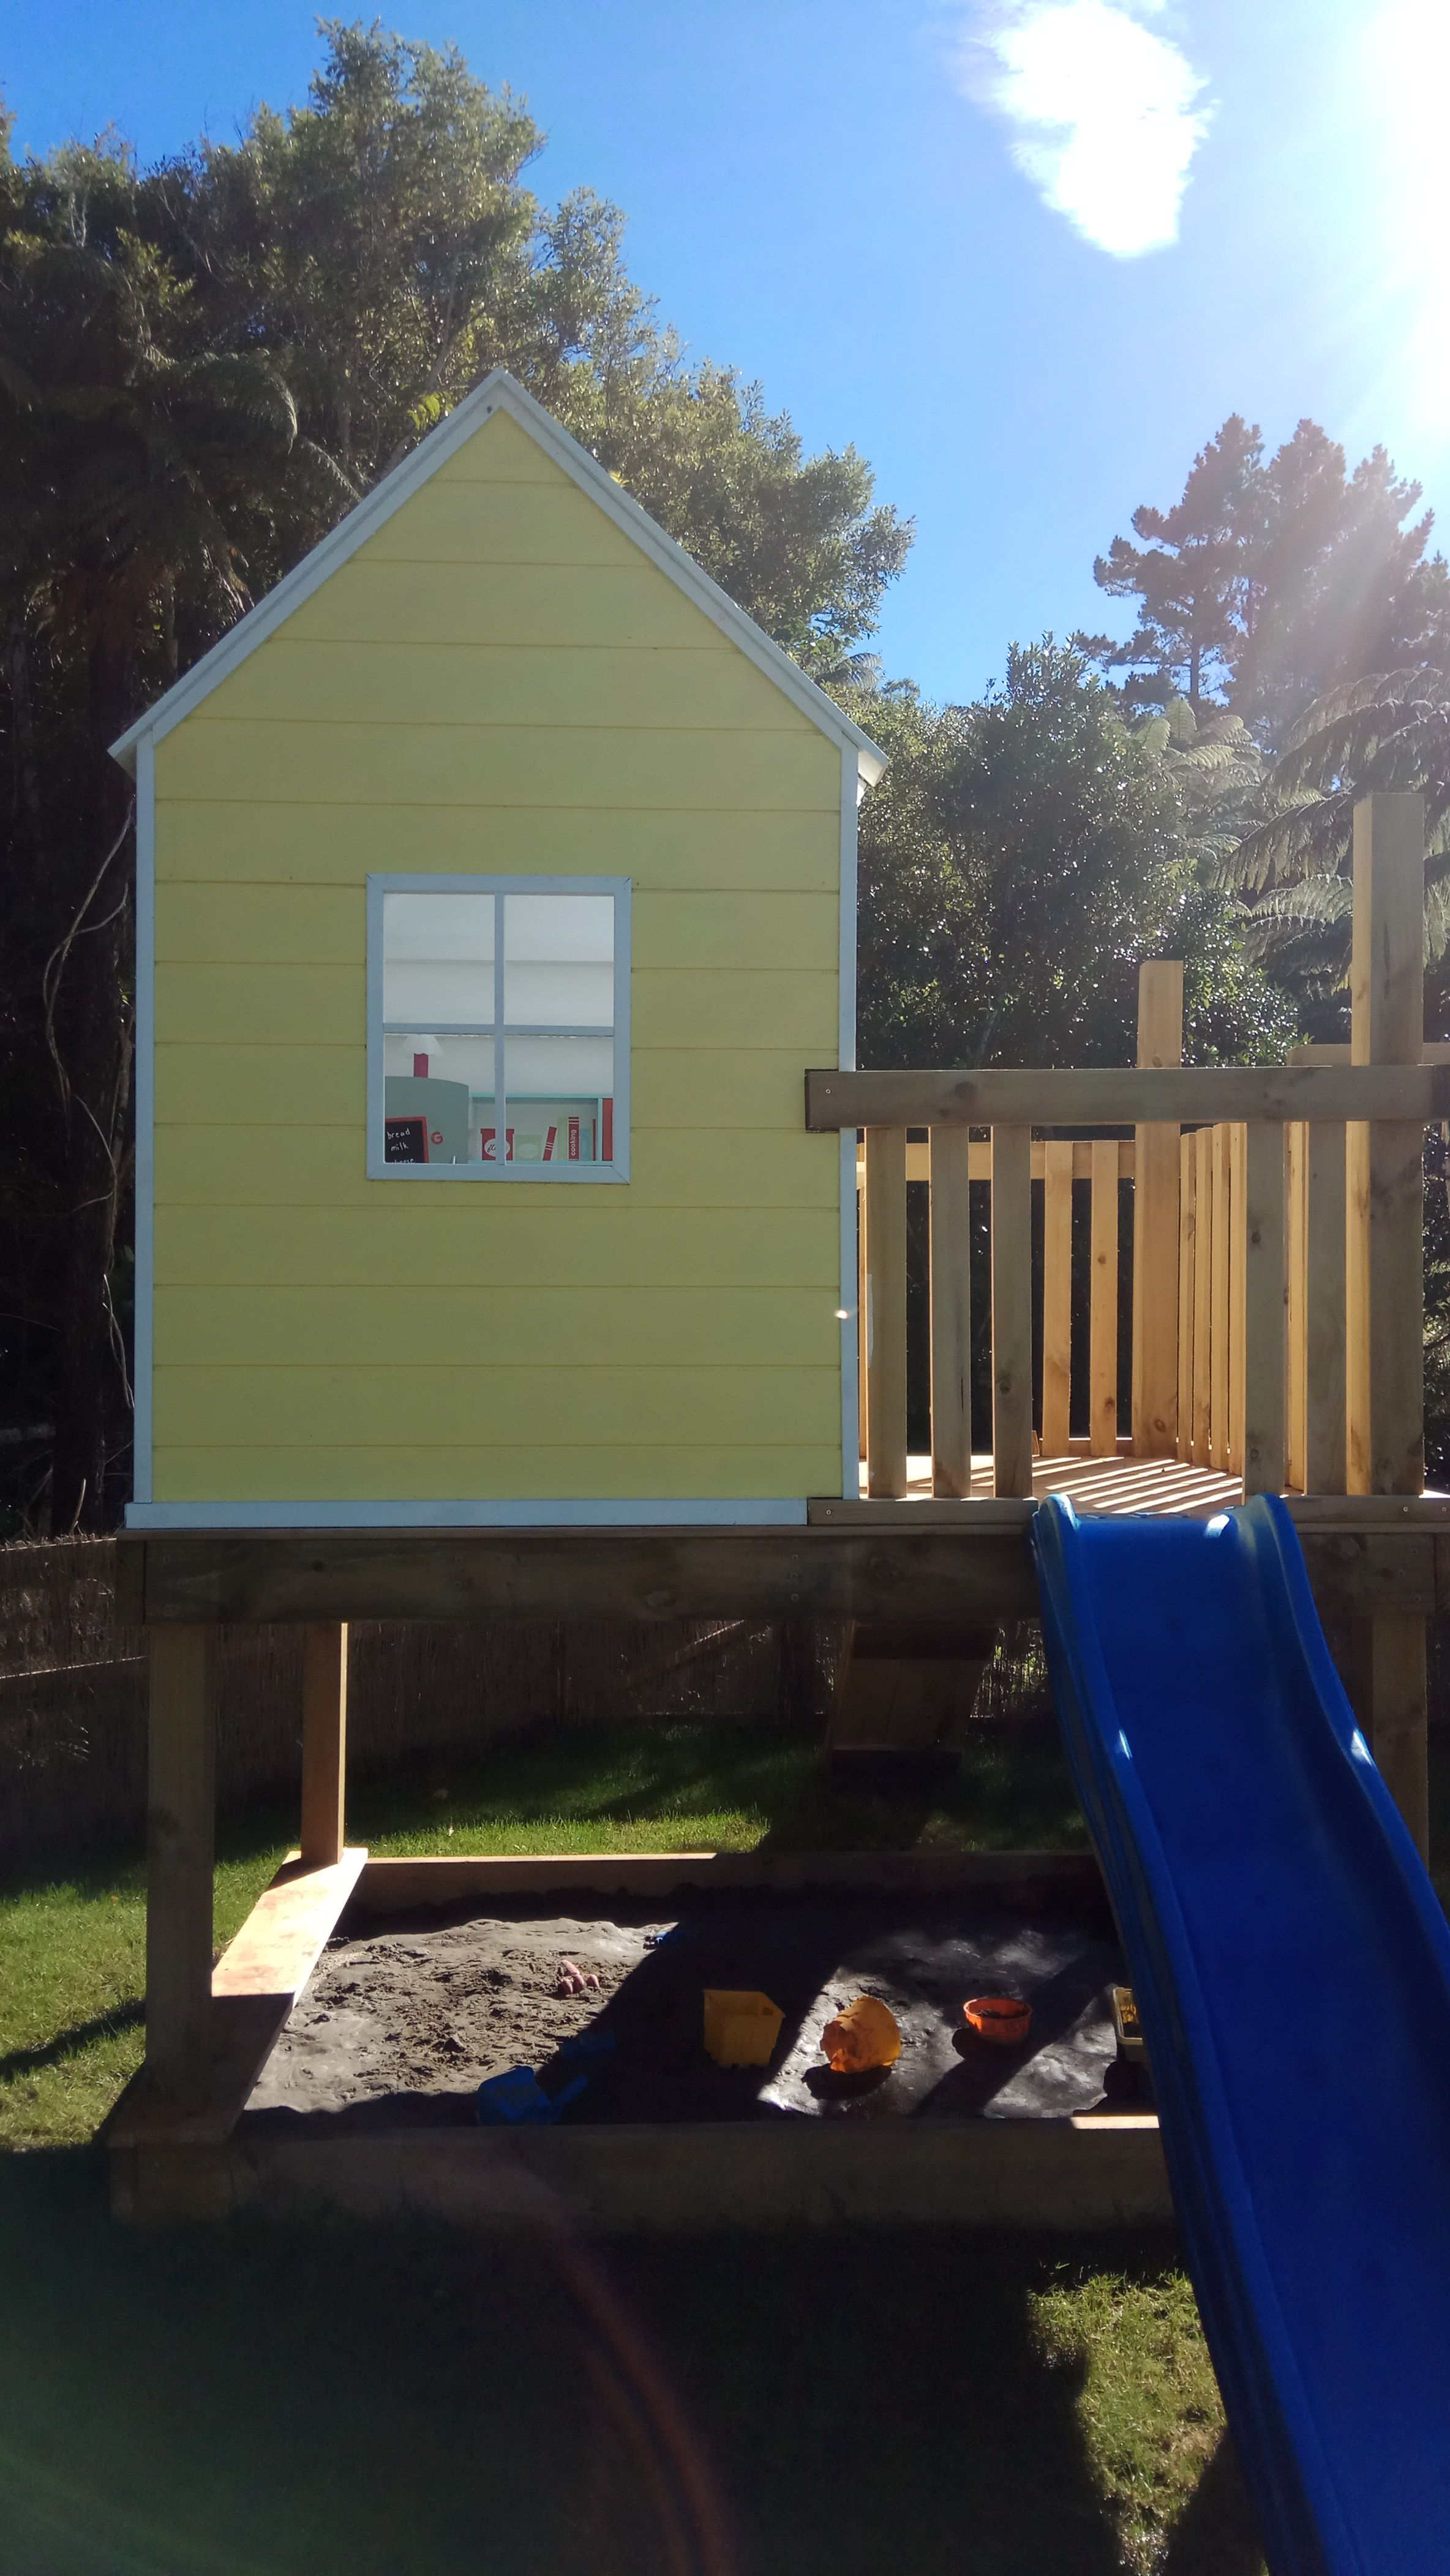 My first big DIY project : a play house for my 2 girls! #handmade #crafts #HowTo #DIY